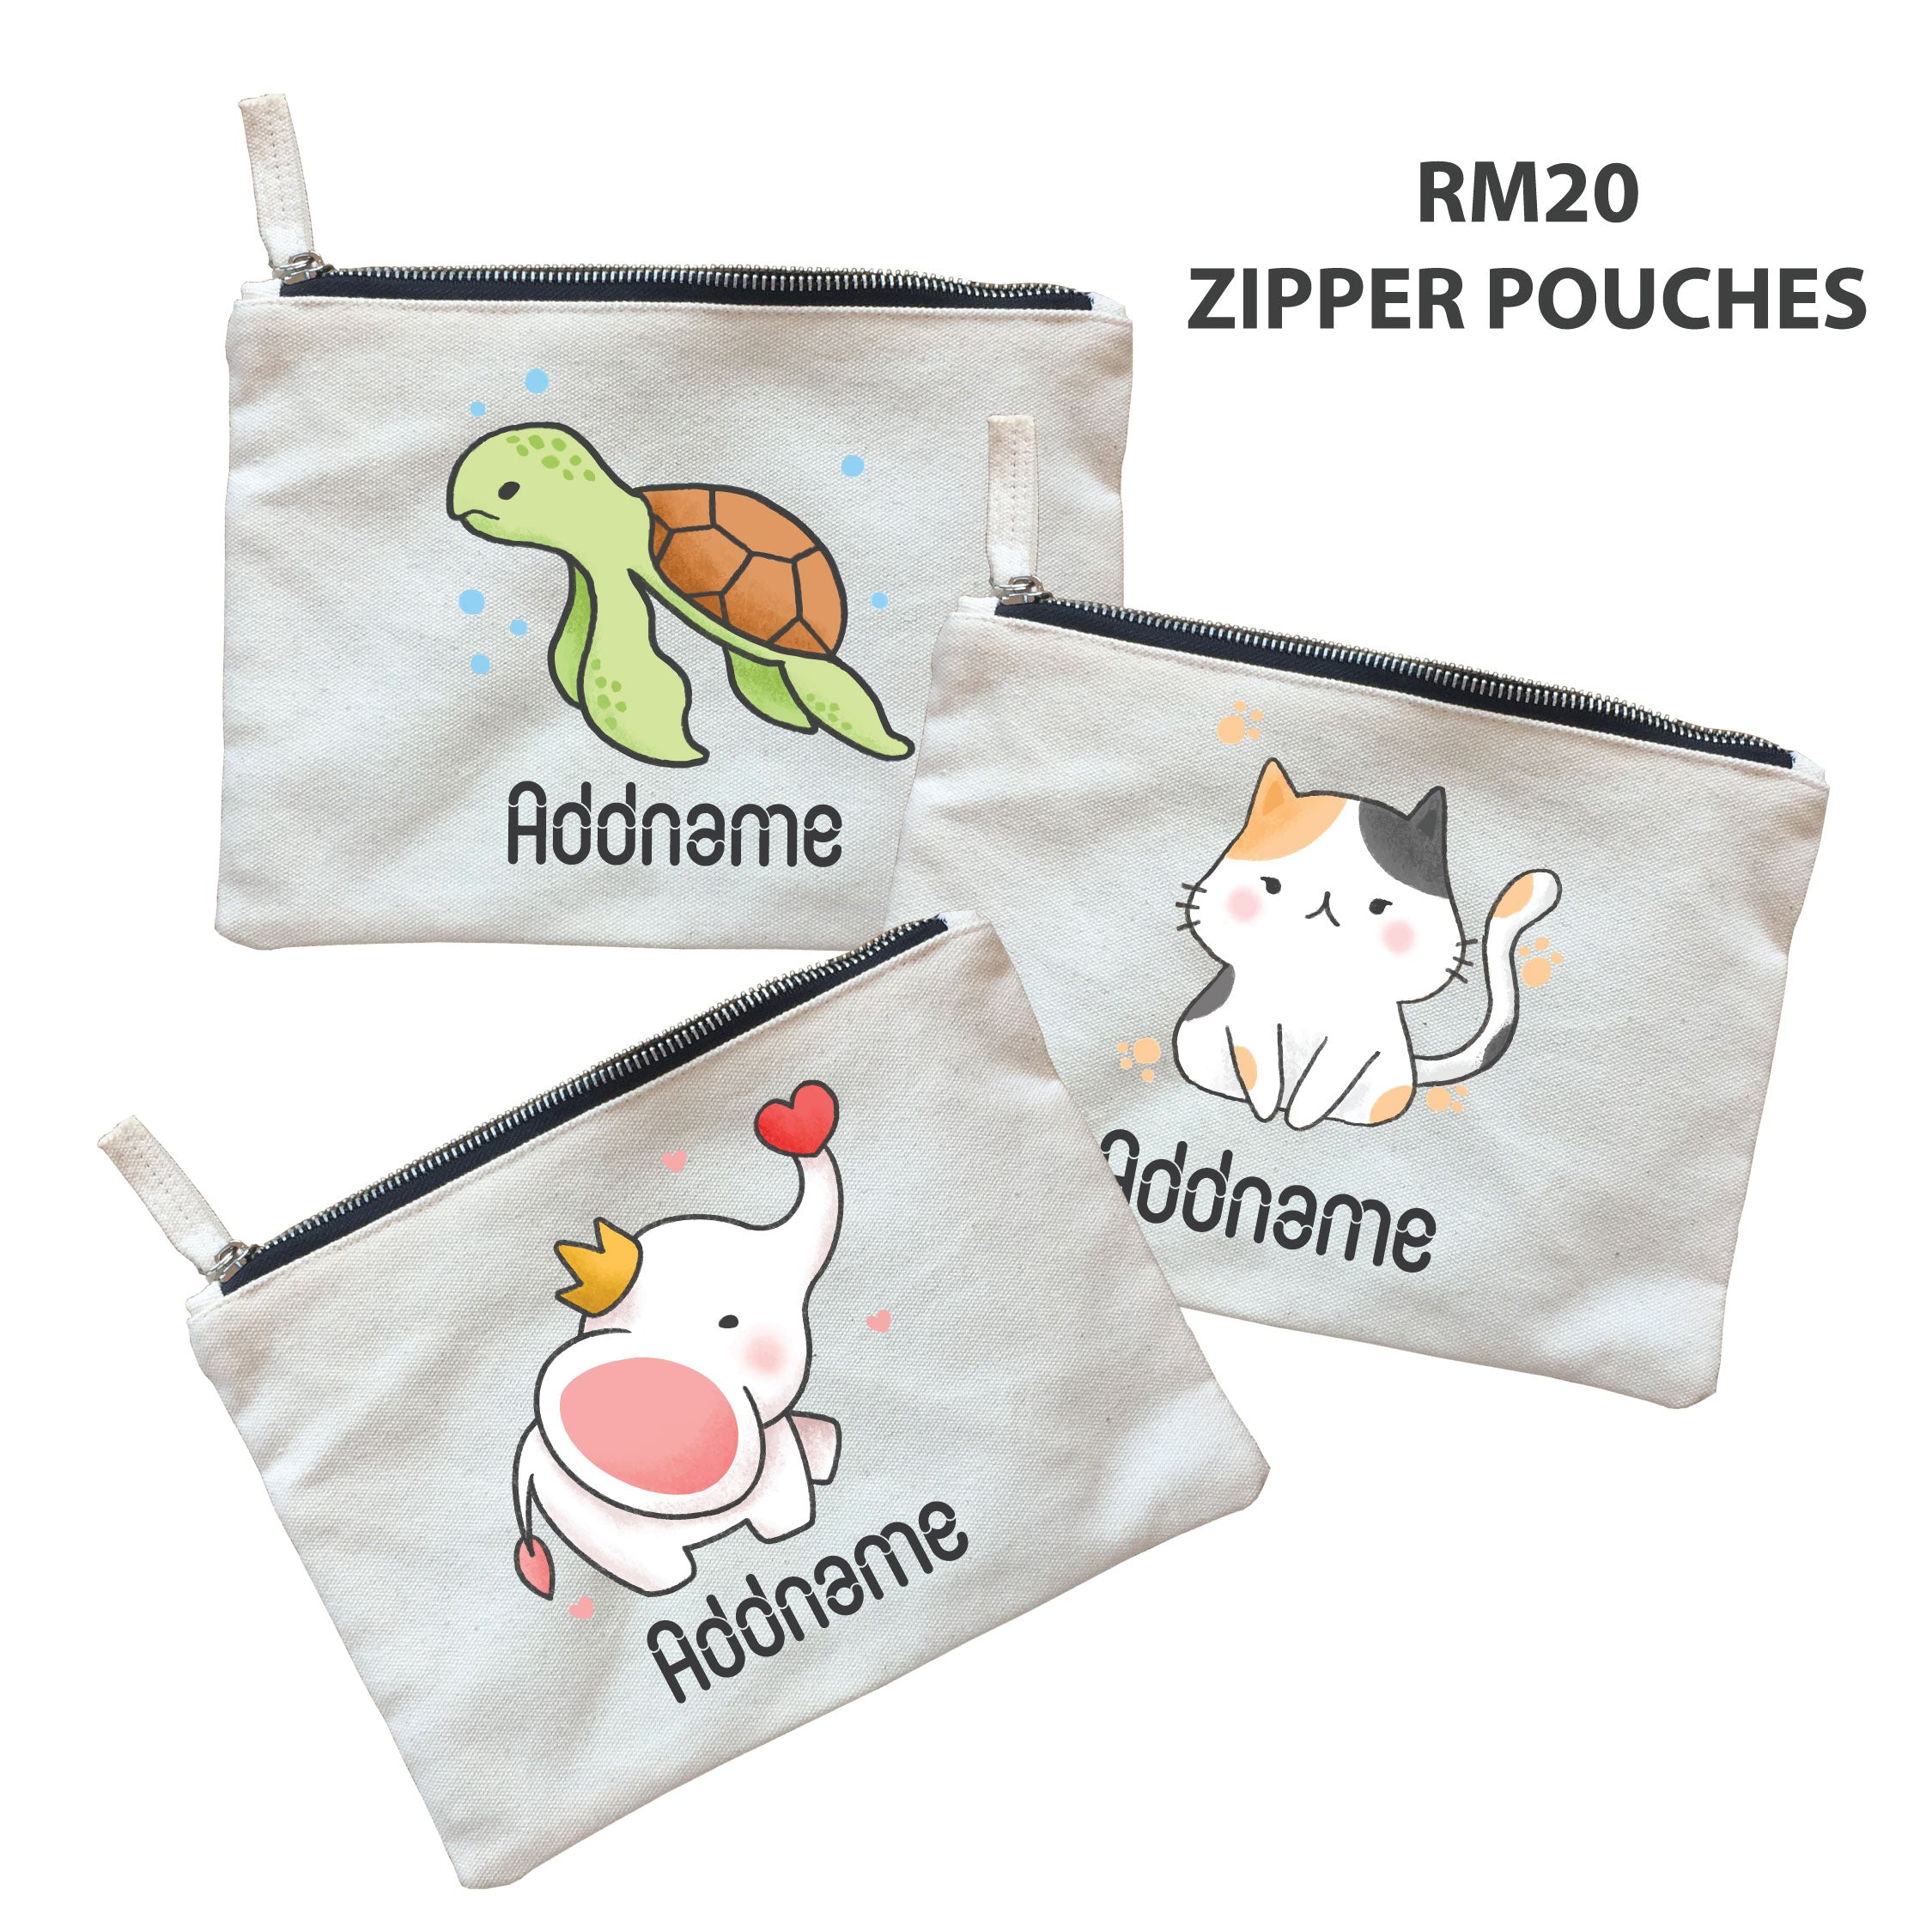 ZIPPER-POUCHES1.jpg